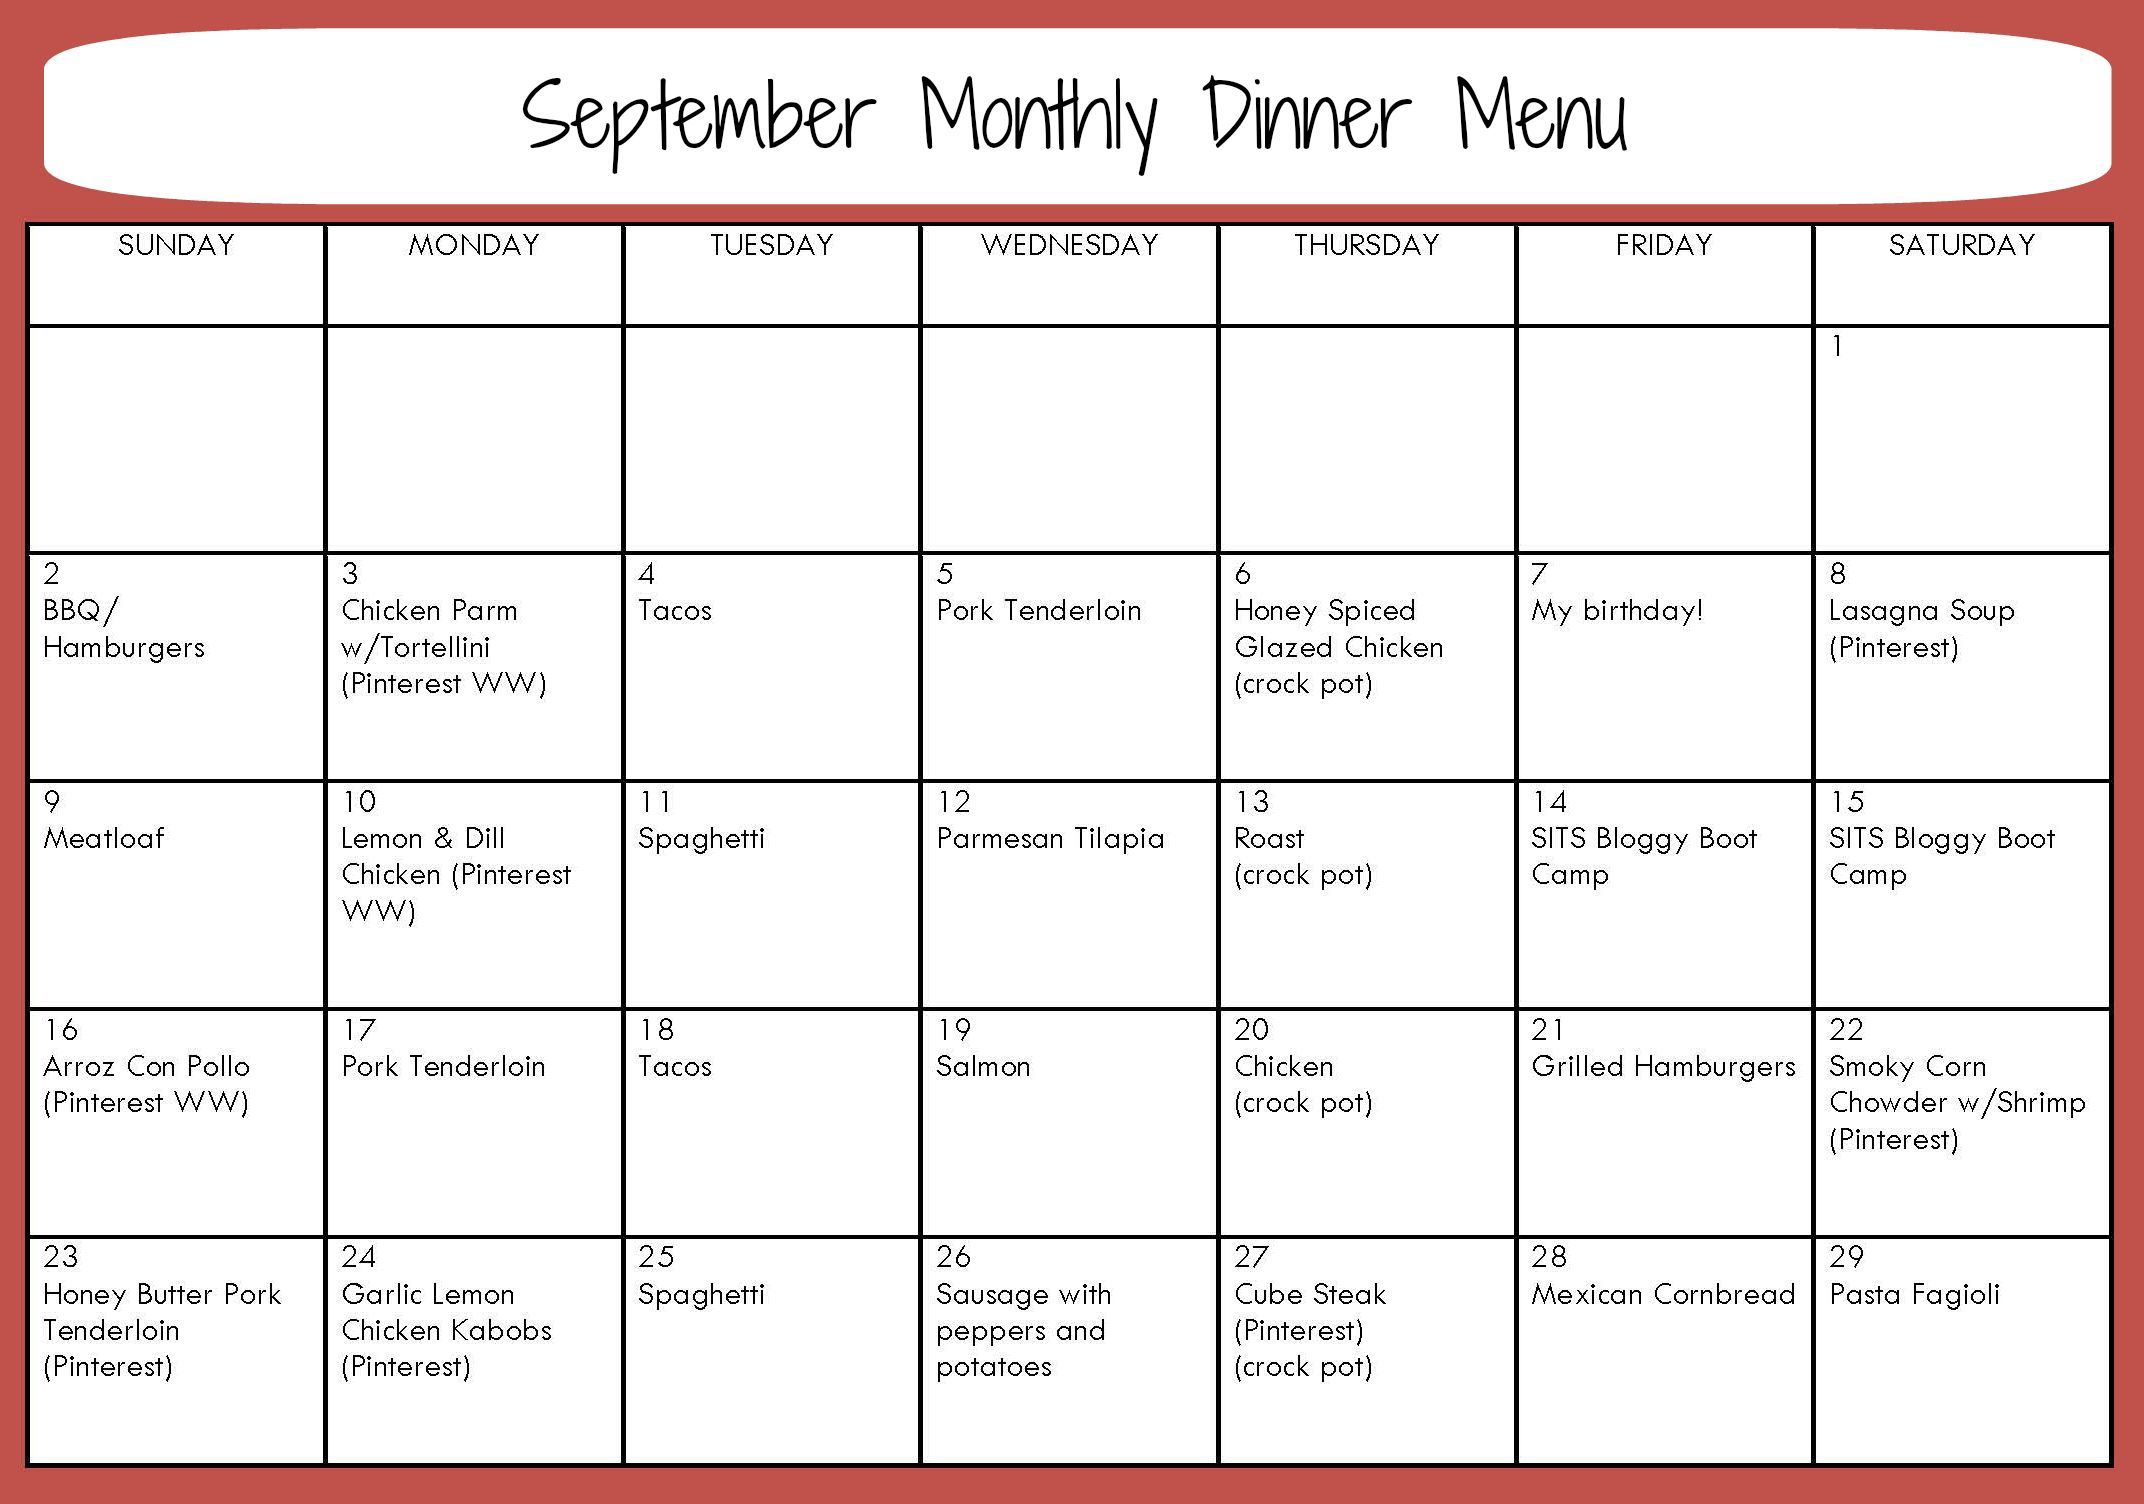 Monthly Dinner Menu for September with links to recipes